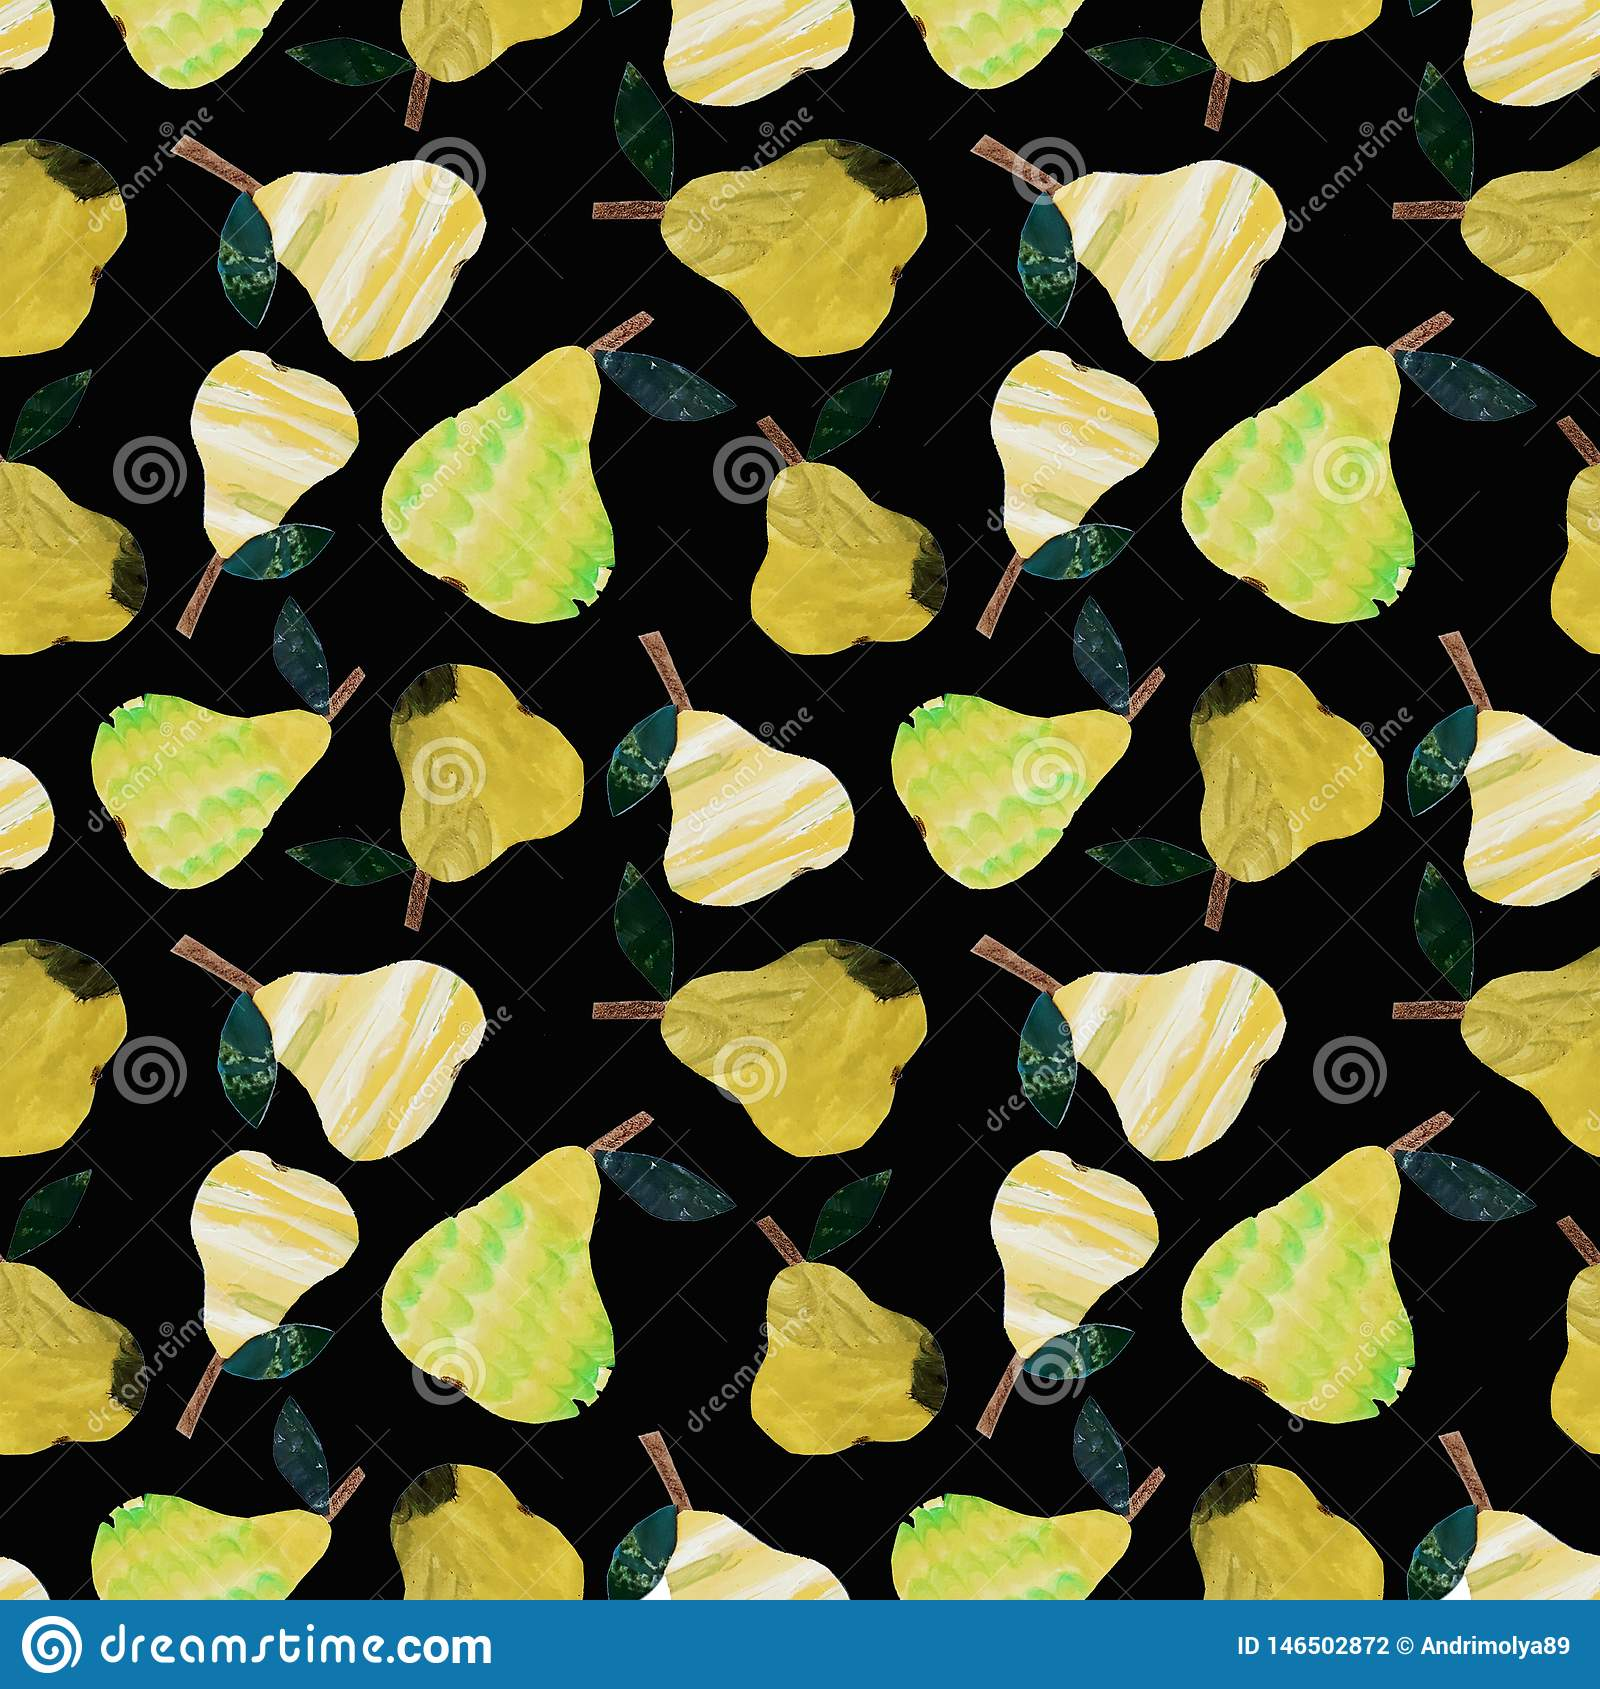 Pear collage pattern